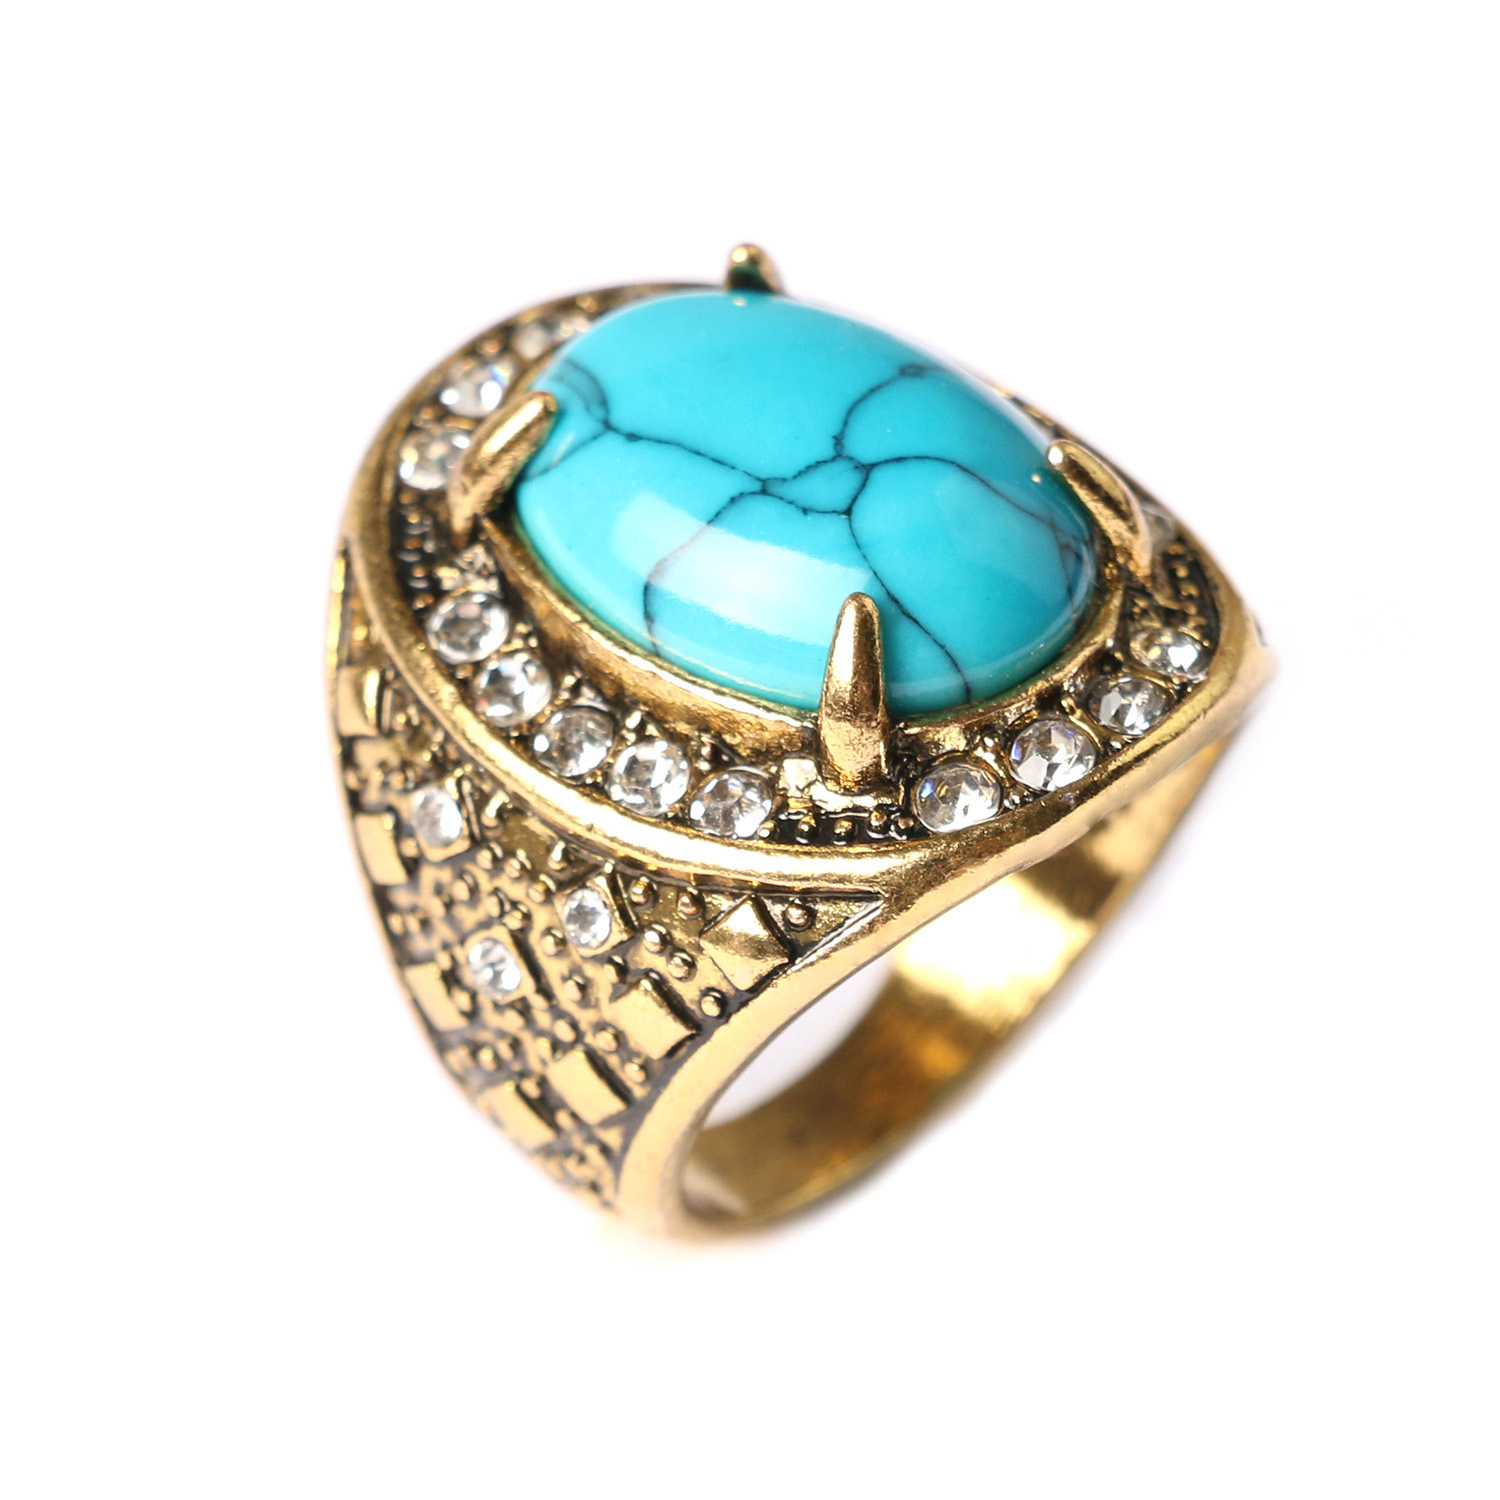 rings navajo collection our twist com back re turquoise by crafted half and ring hand available indieandharper stone we artisans pin in